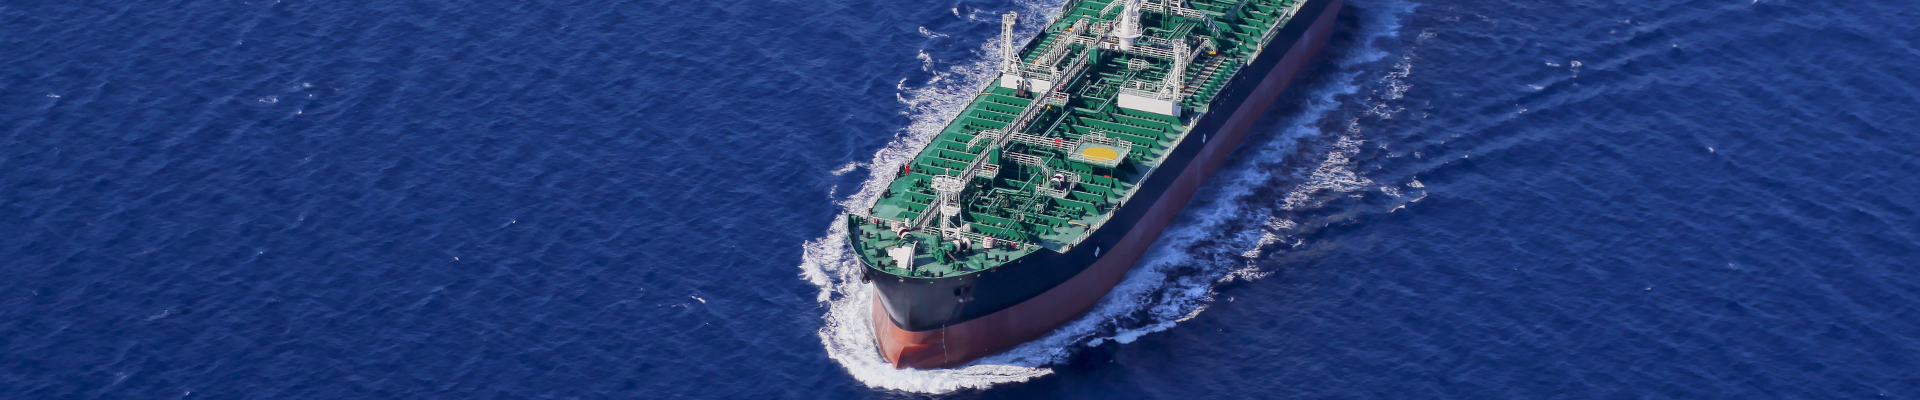 James Fisher vessel out at sea